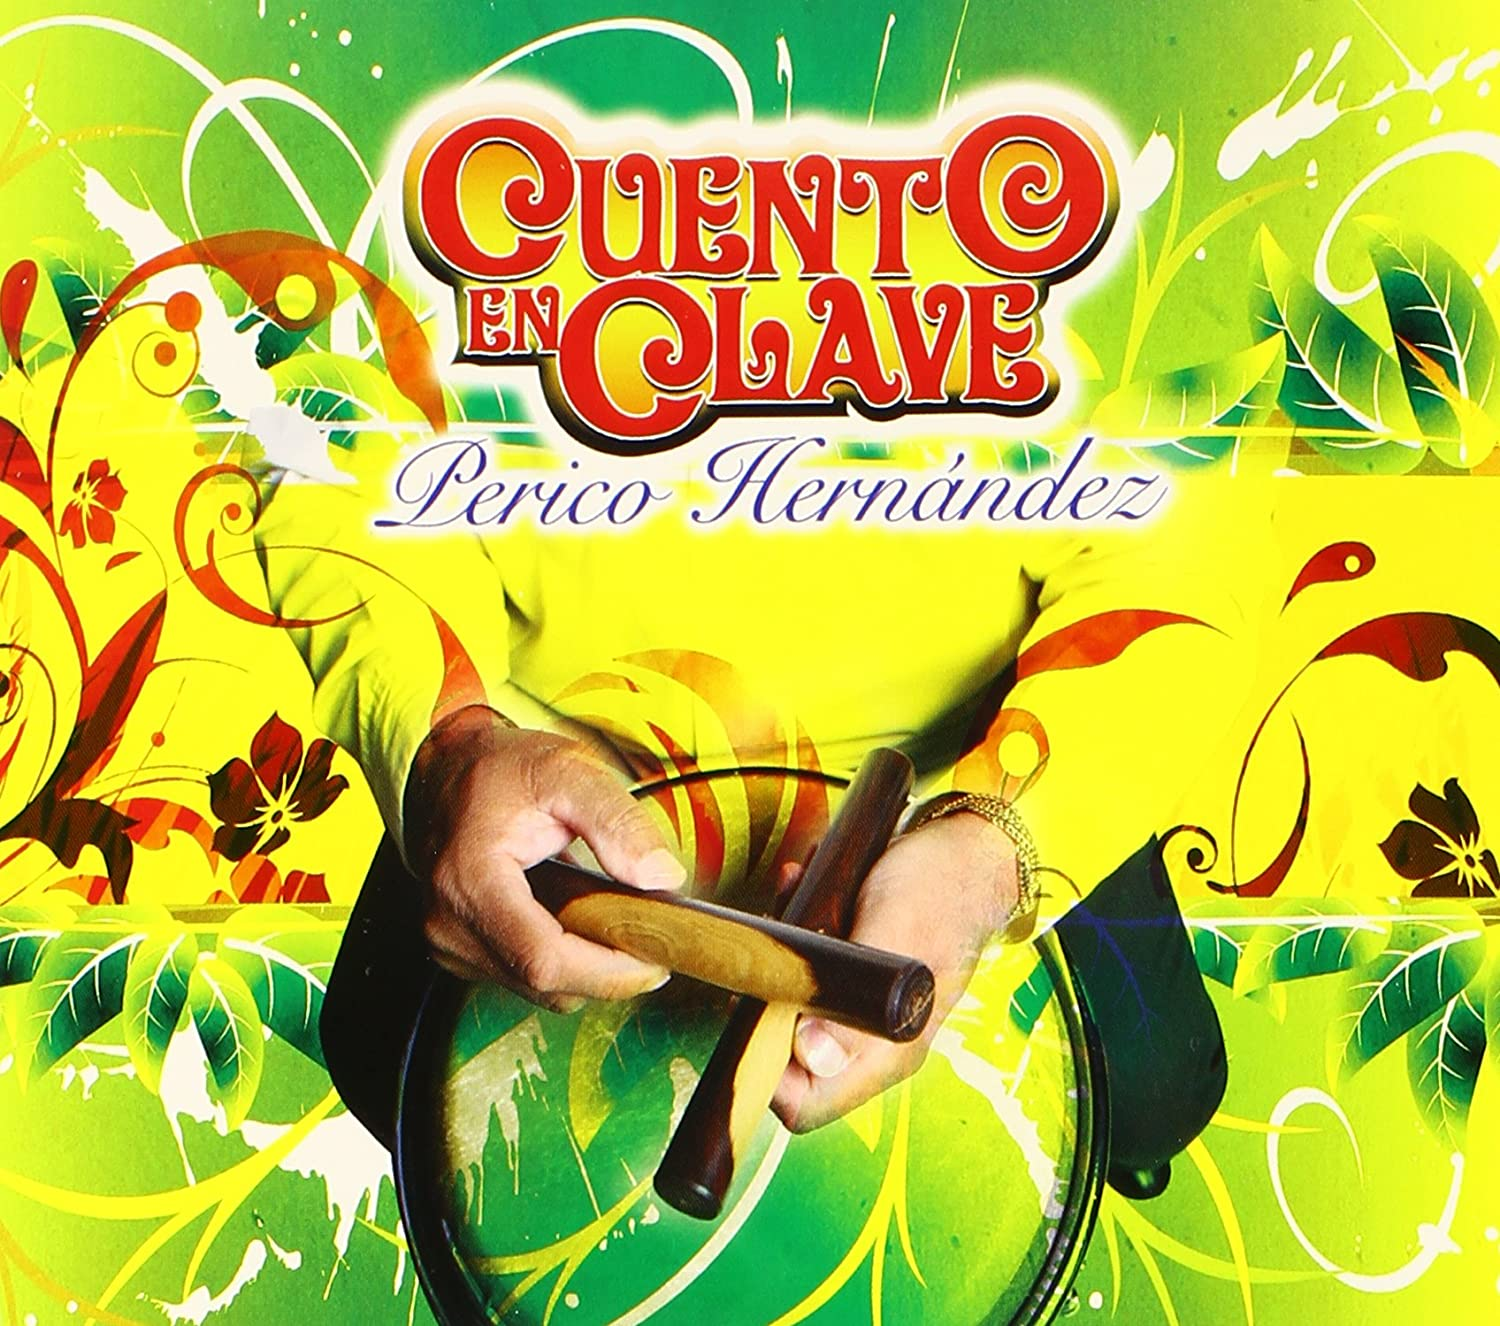 Cuento We OFFer at cheap prices Directly managed store en Clave